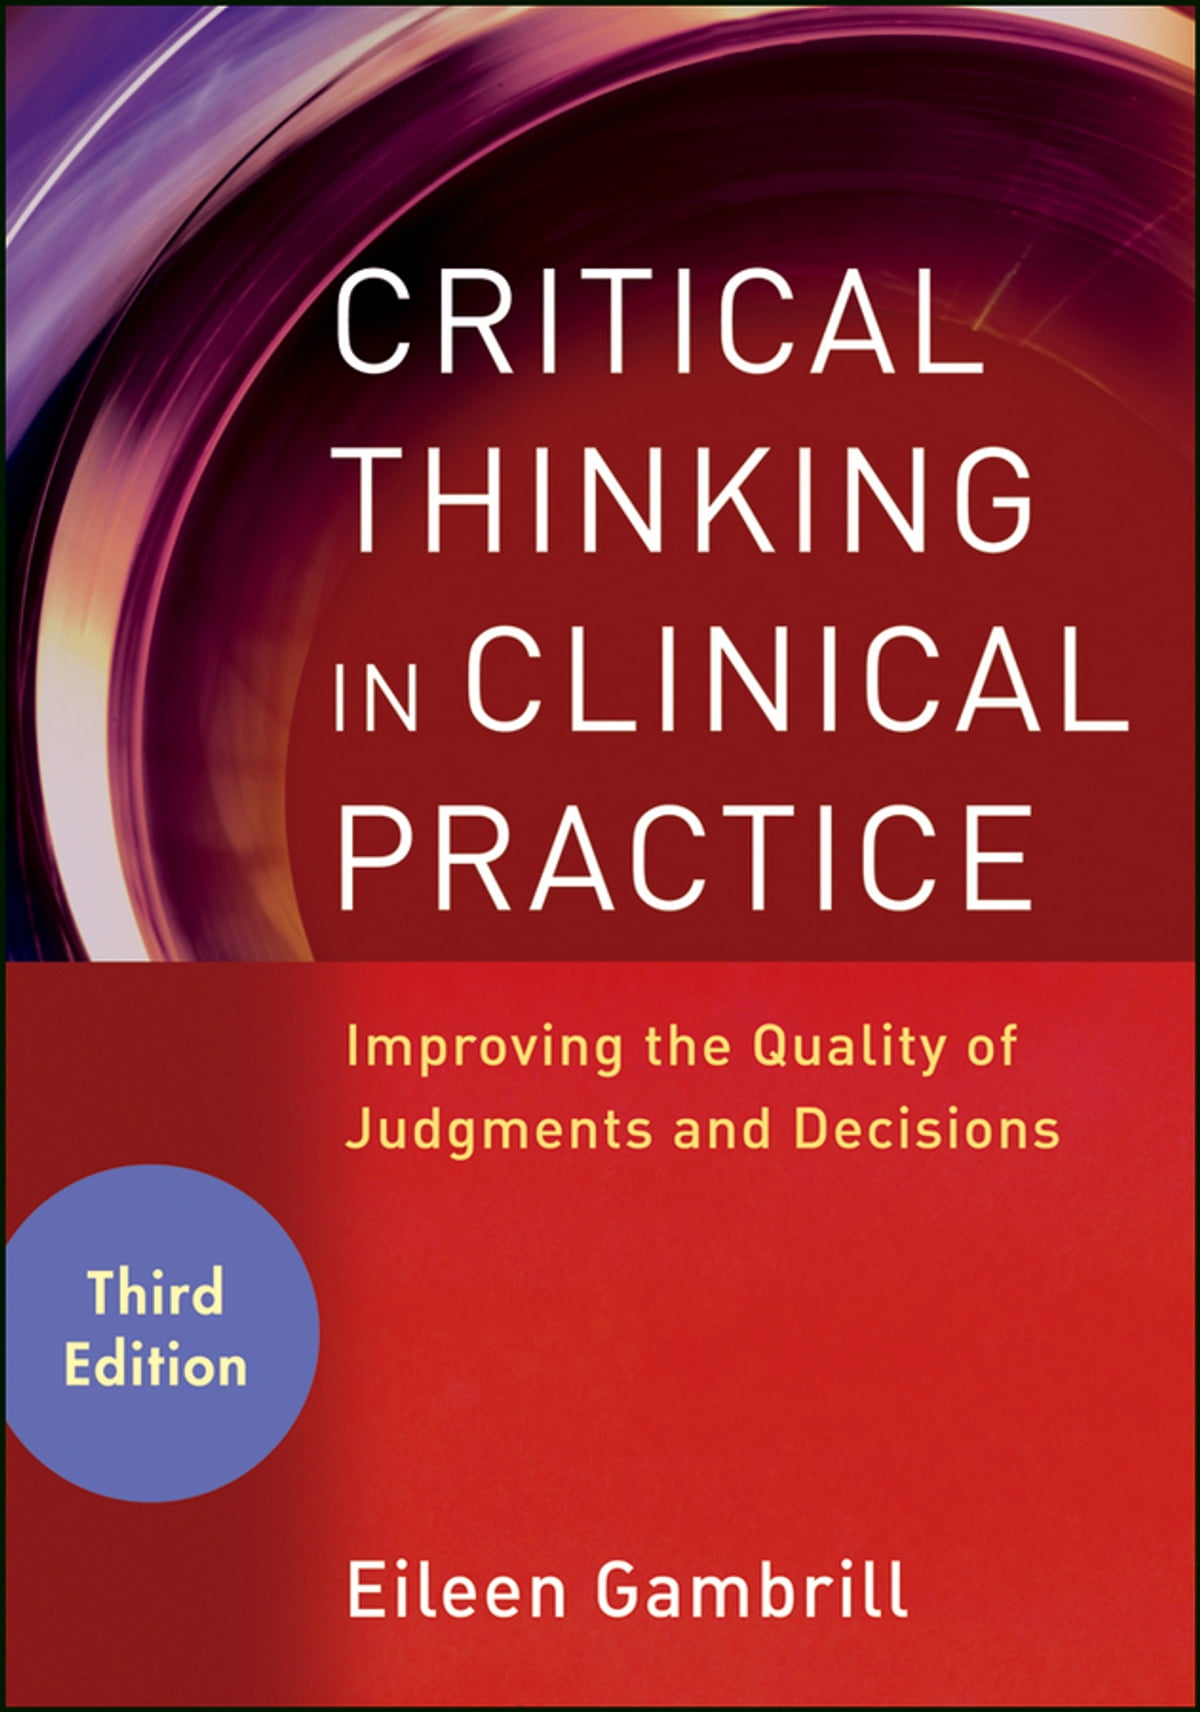 Critical Thinking in Clinical Practice eBook by Eileen Gambrill -  9781118217030 | Rakuten Kobo